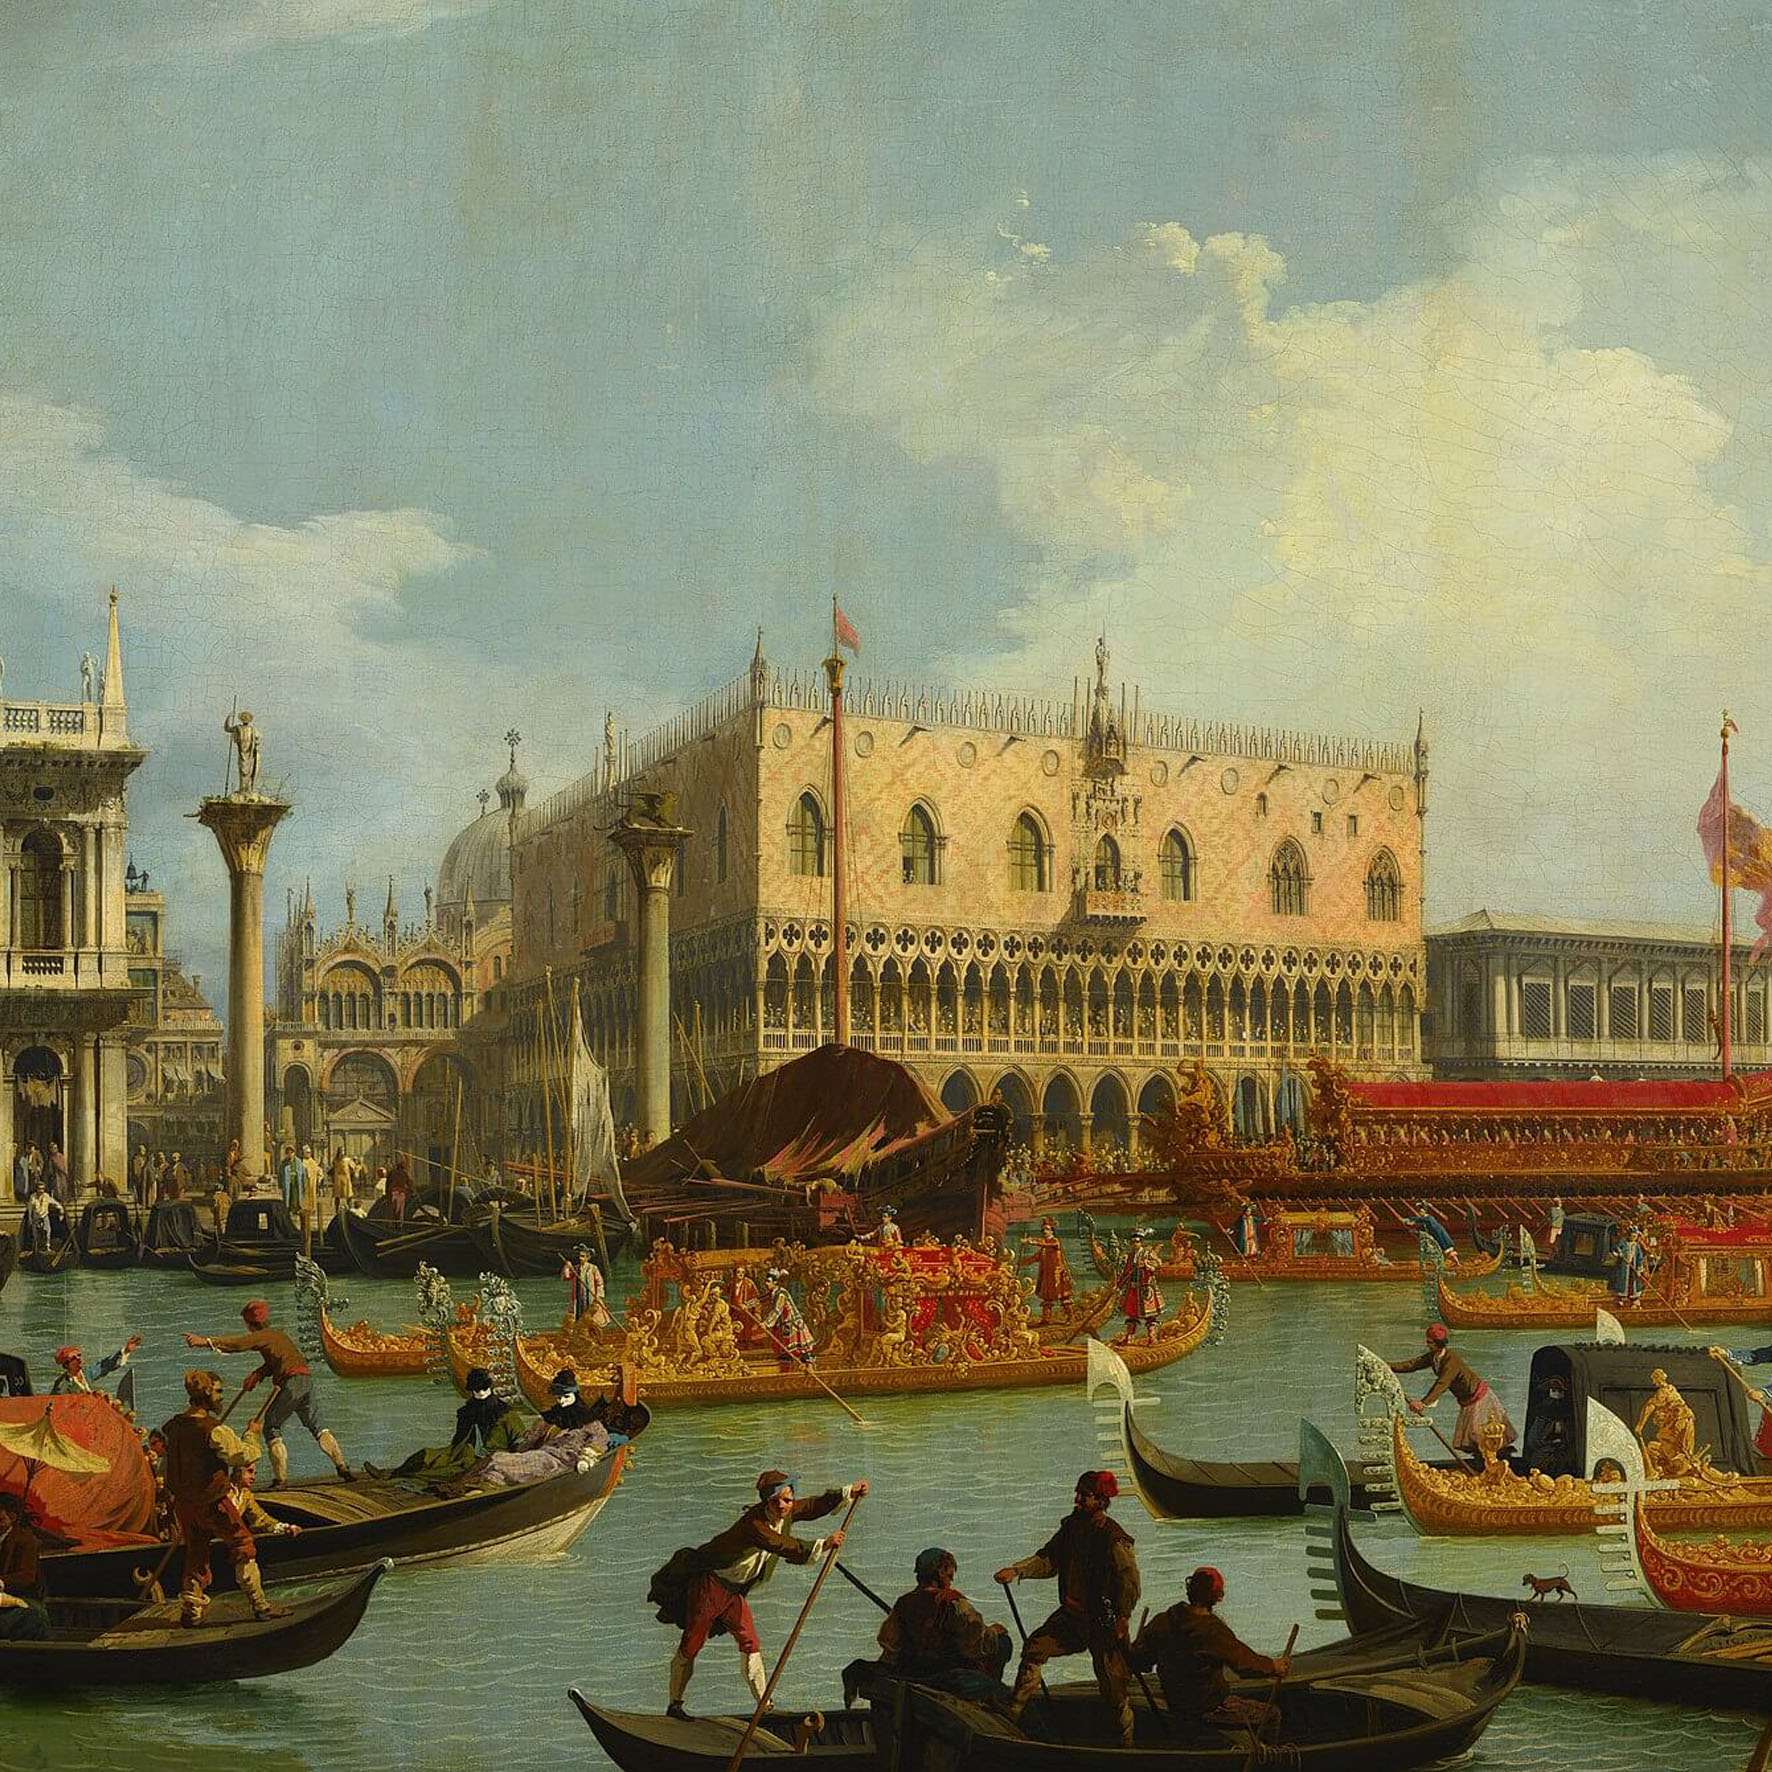 GLORY OF LIGHT AND COLOUR. FROM TIEPOLO TO CANALETTO AND GUARDI